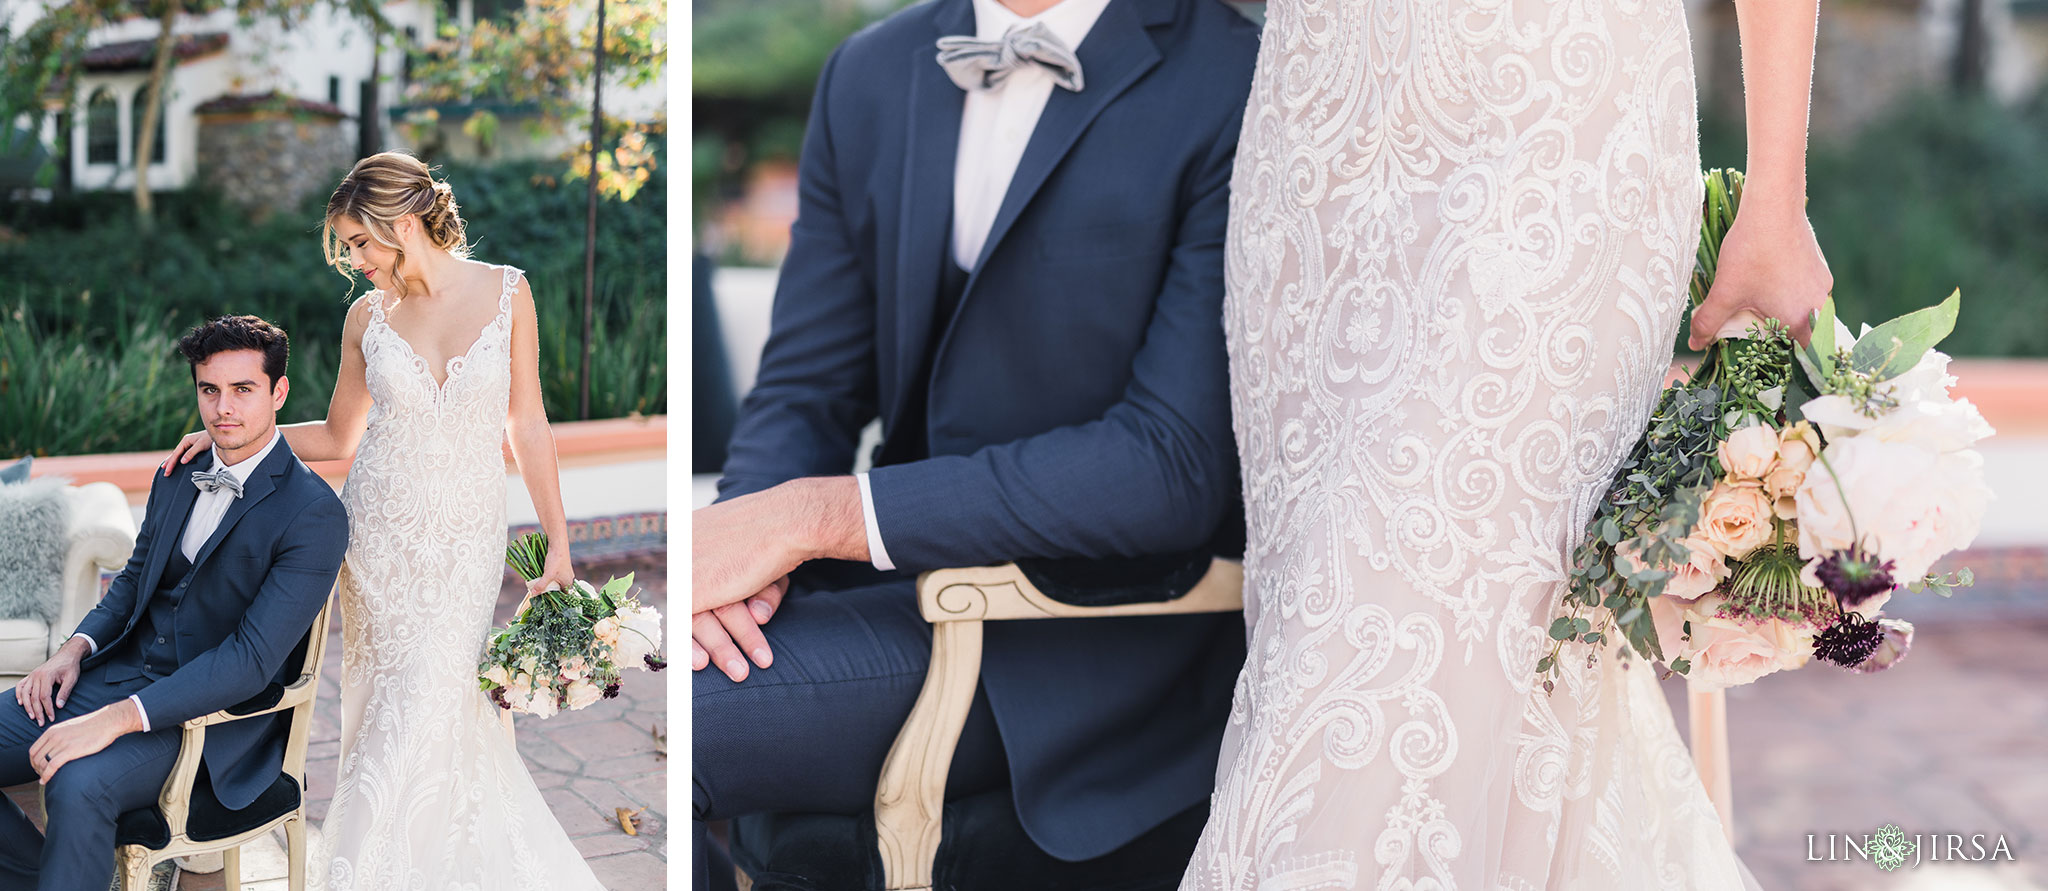 19 Rancho Las Lomas Stylized Wedding Photography